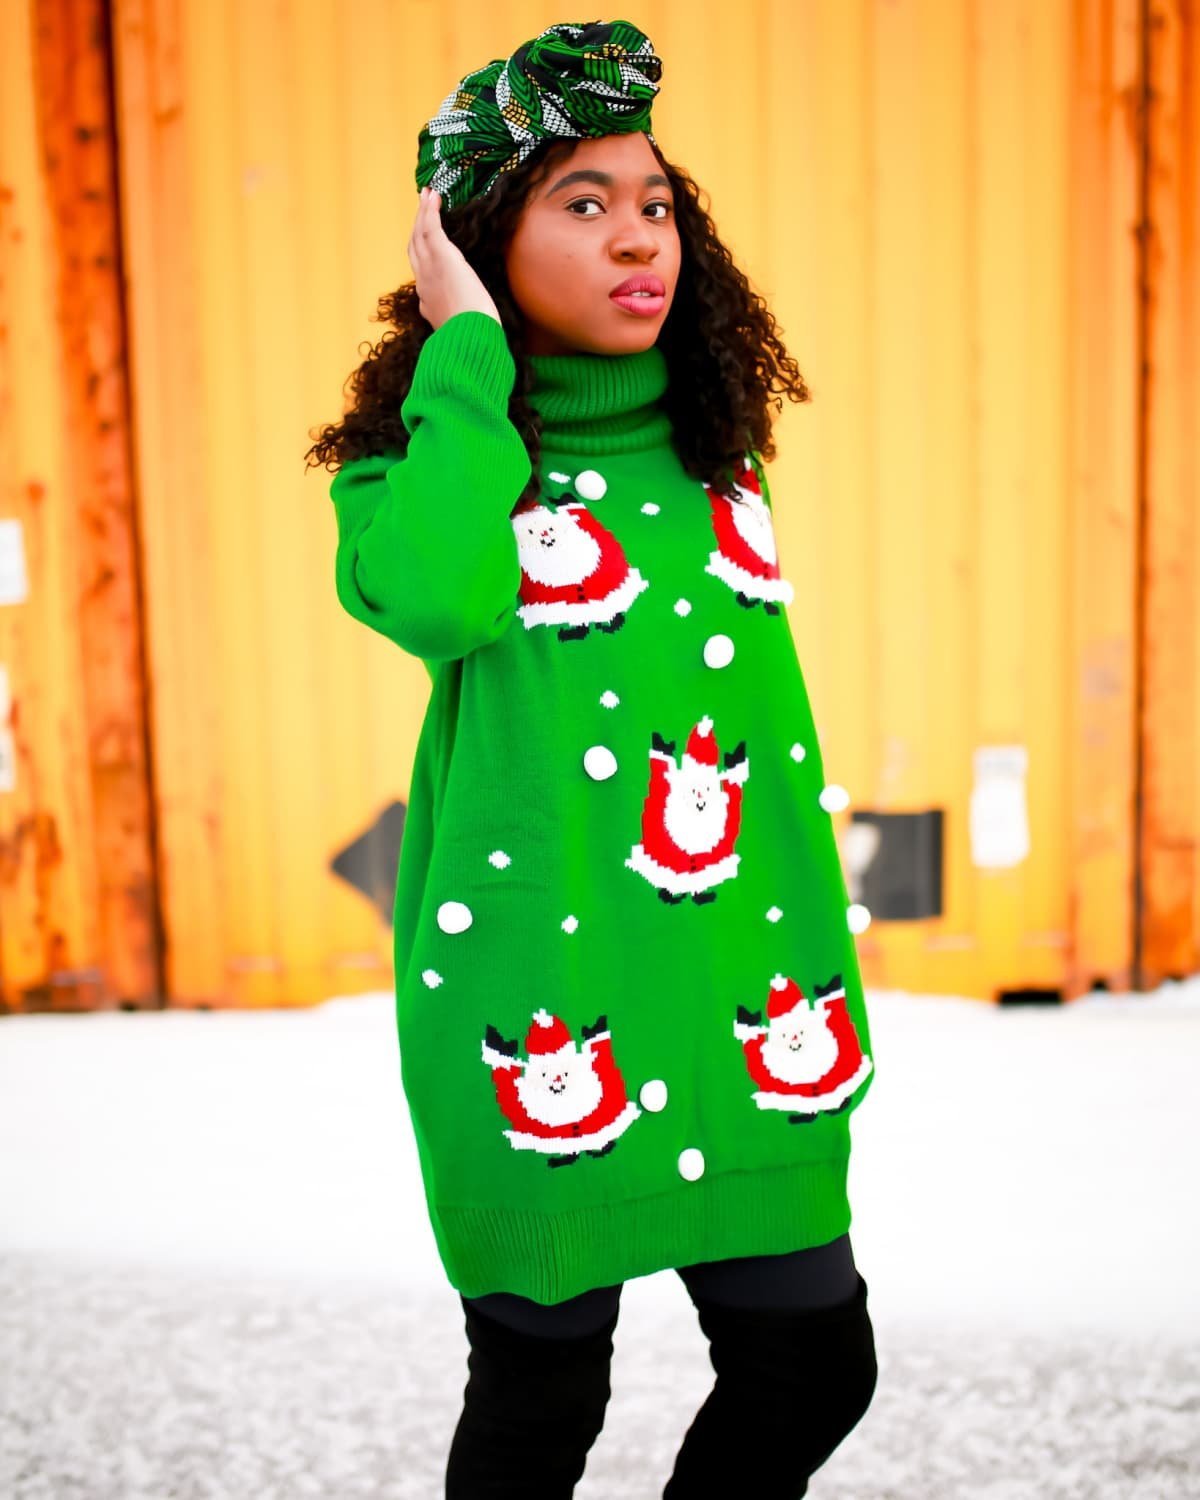 The Cutest Ugly Christmas Sweater Dress This Year!